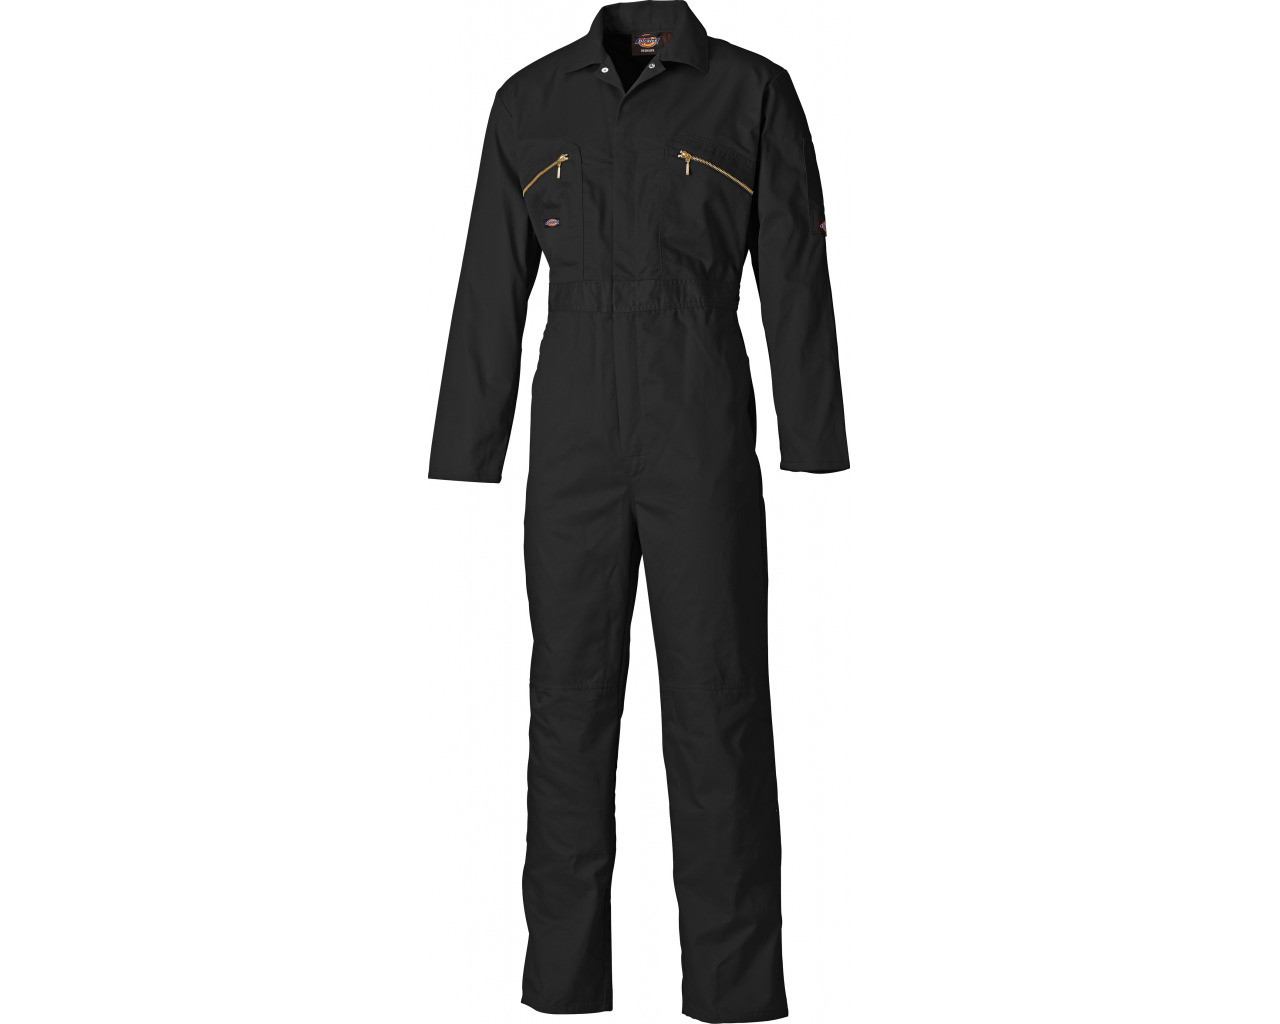 Dickies - Redhawk Coverall zip - Black